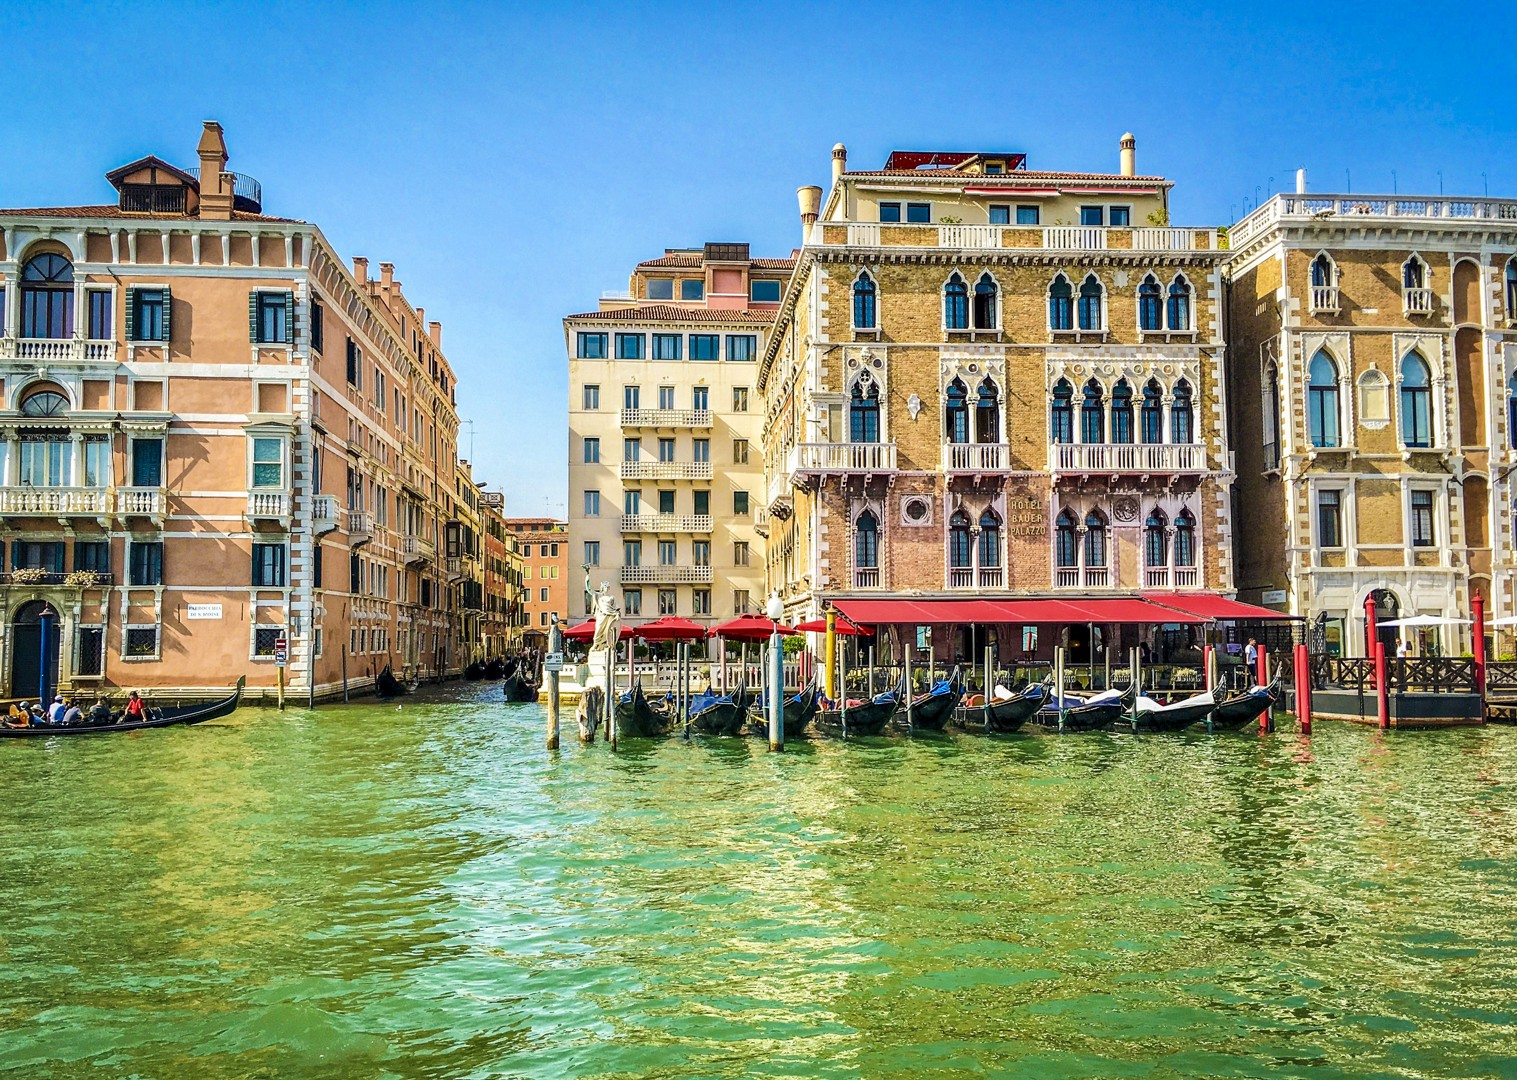 incredible-architecture-venice-city-visit-by-bike-and-boat-holiday.jpg - Italy - Venetian Waterways (Mantova to Venice) - Bike and Barge Holiday - Leisure Cycling